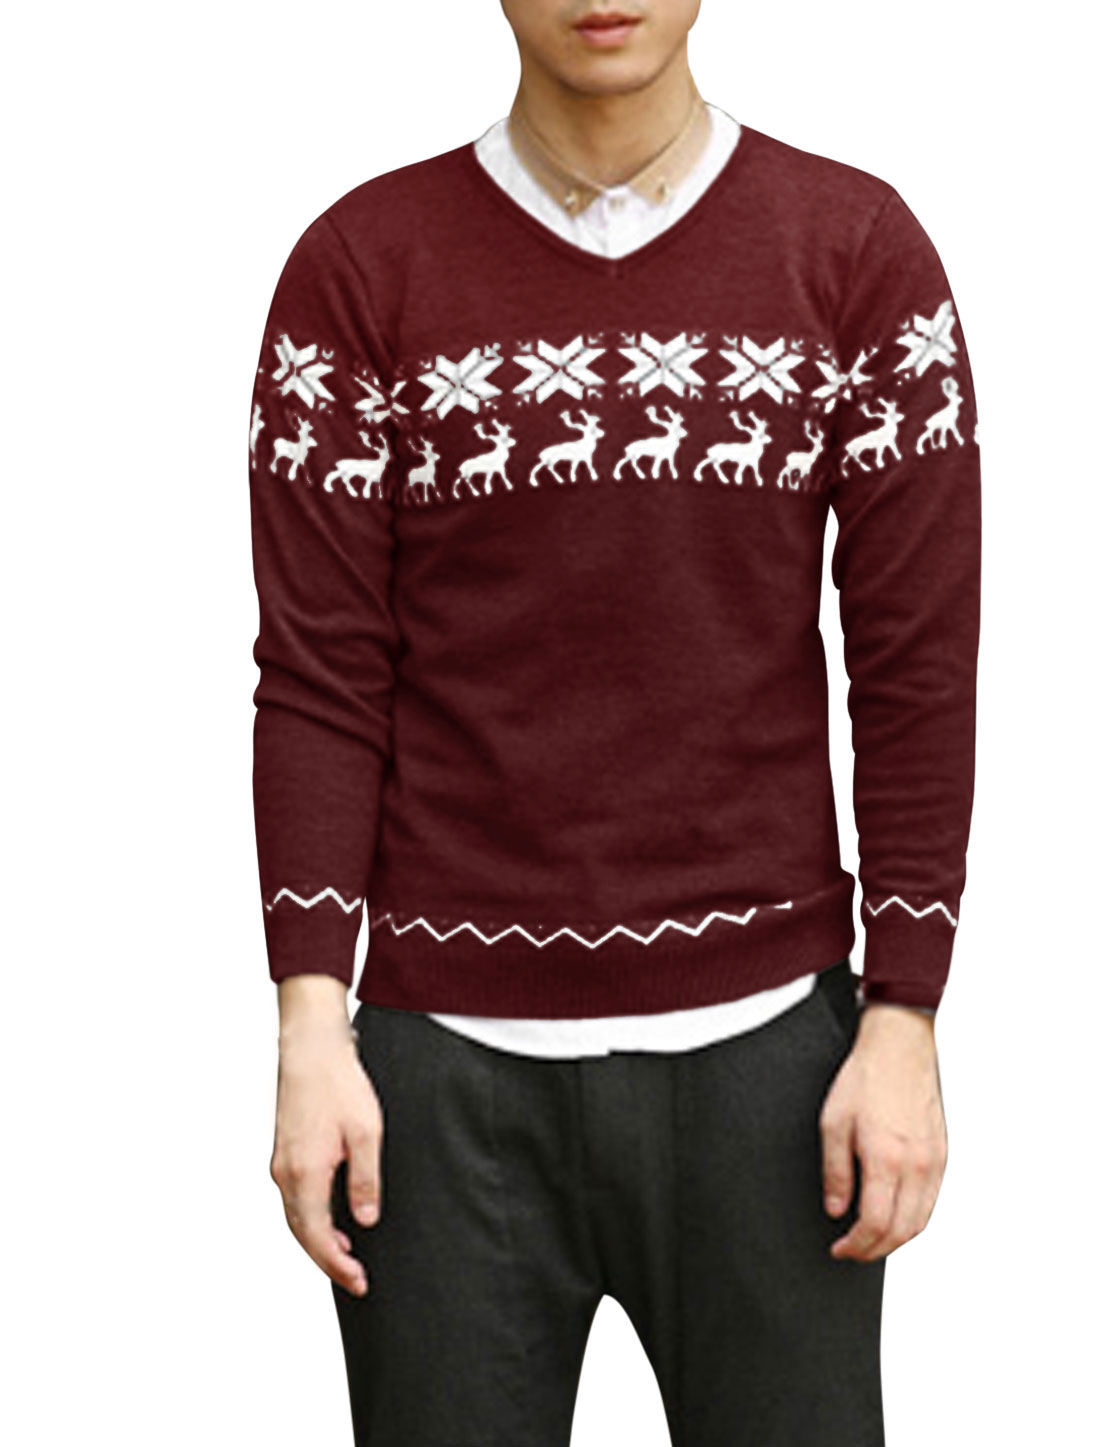 Ribbed Cuffs Deer Pattern Snowflake Pattern Casual Sweater for Men Burgundy M